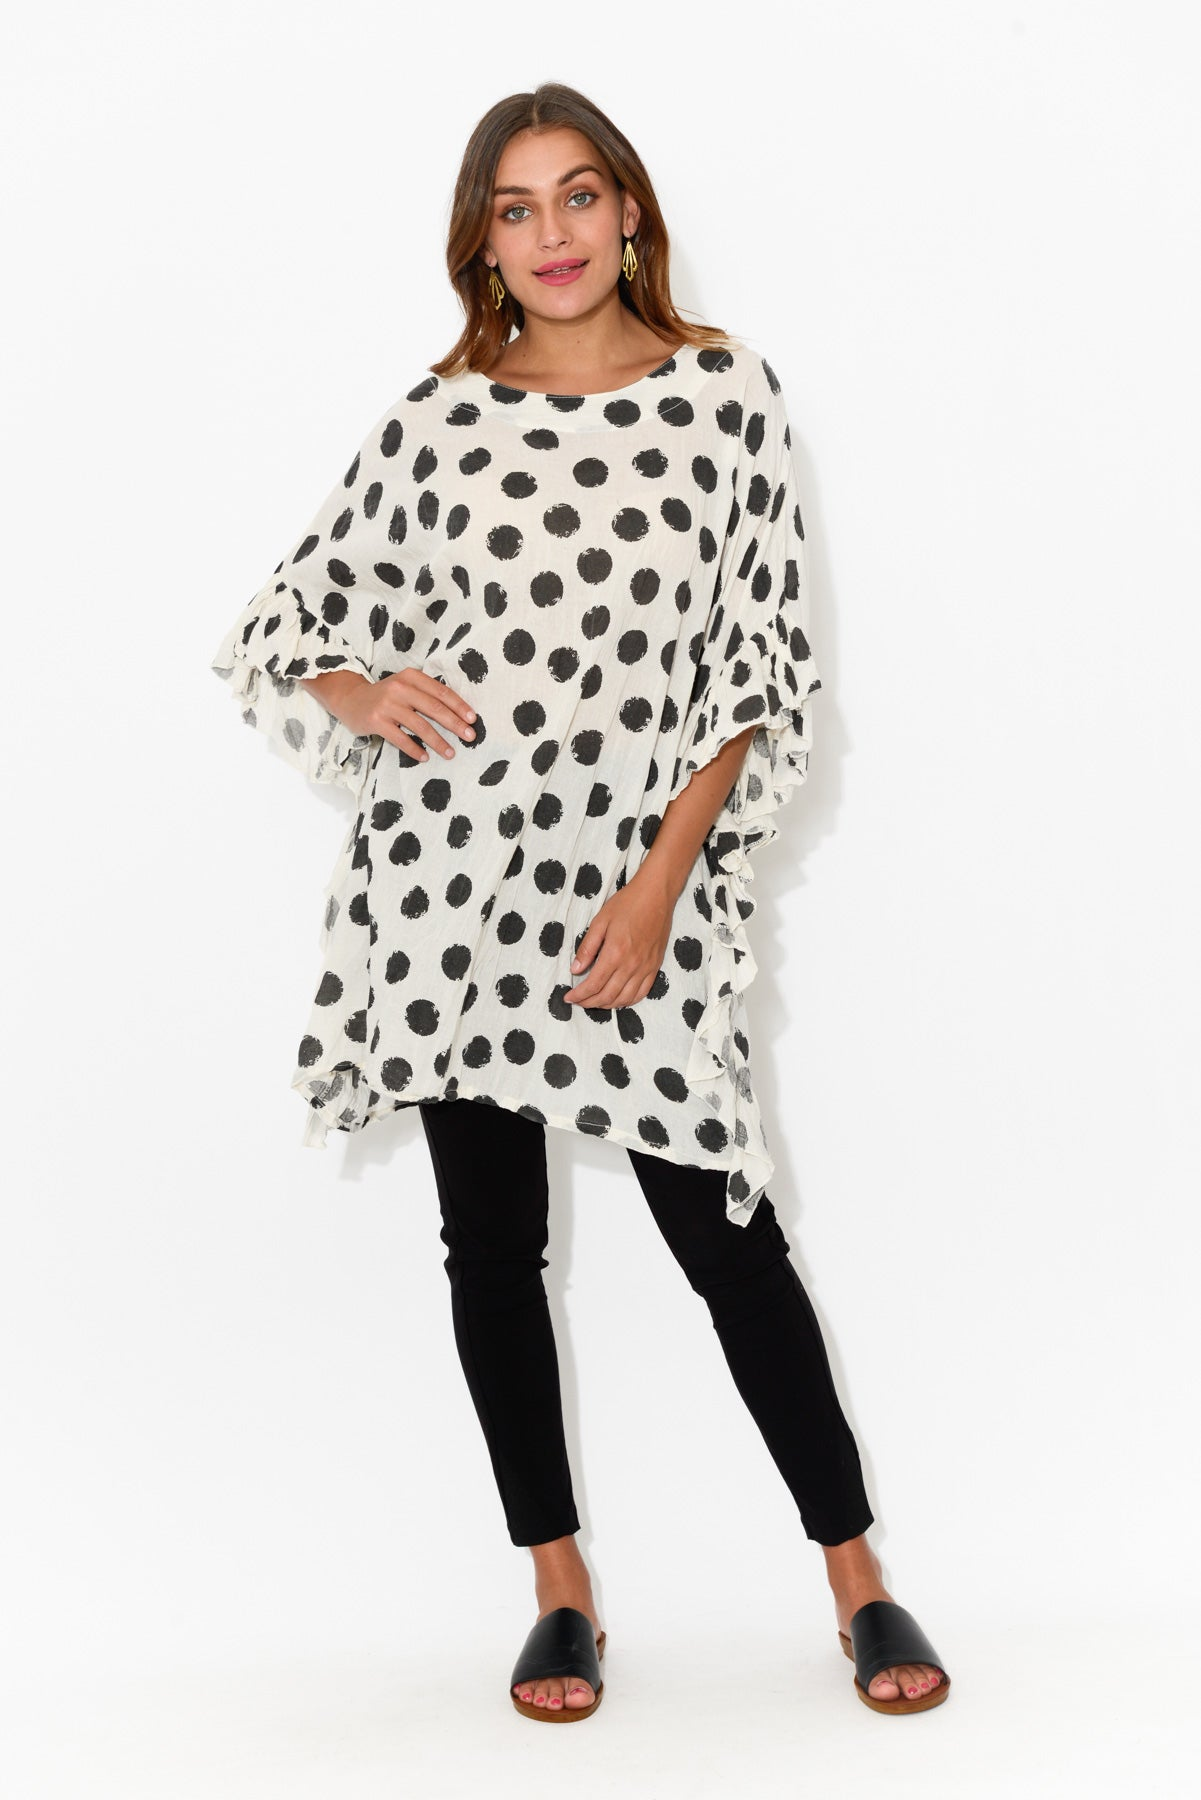 Black Spot Crinkle Cotton Oversized Tunic - Blue Bungalow